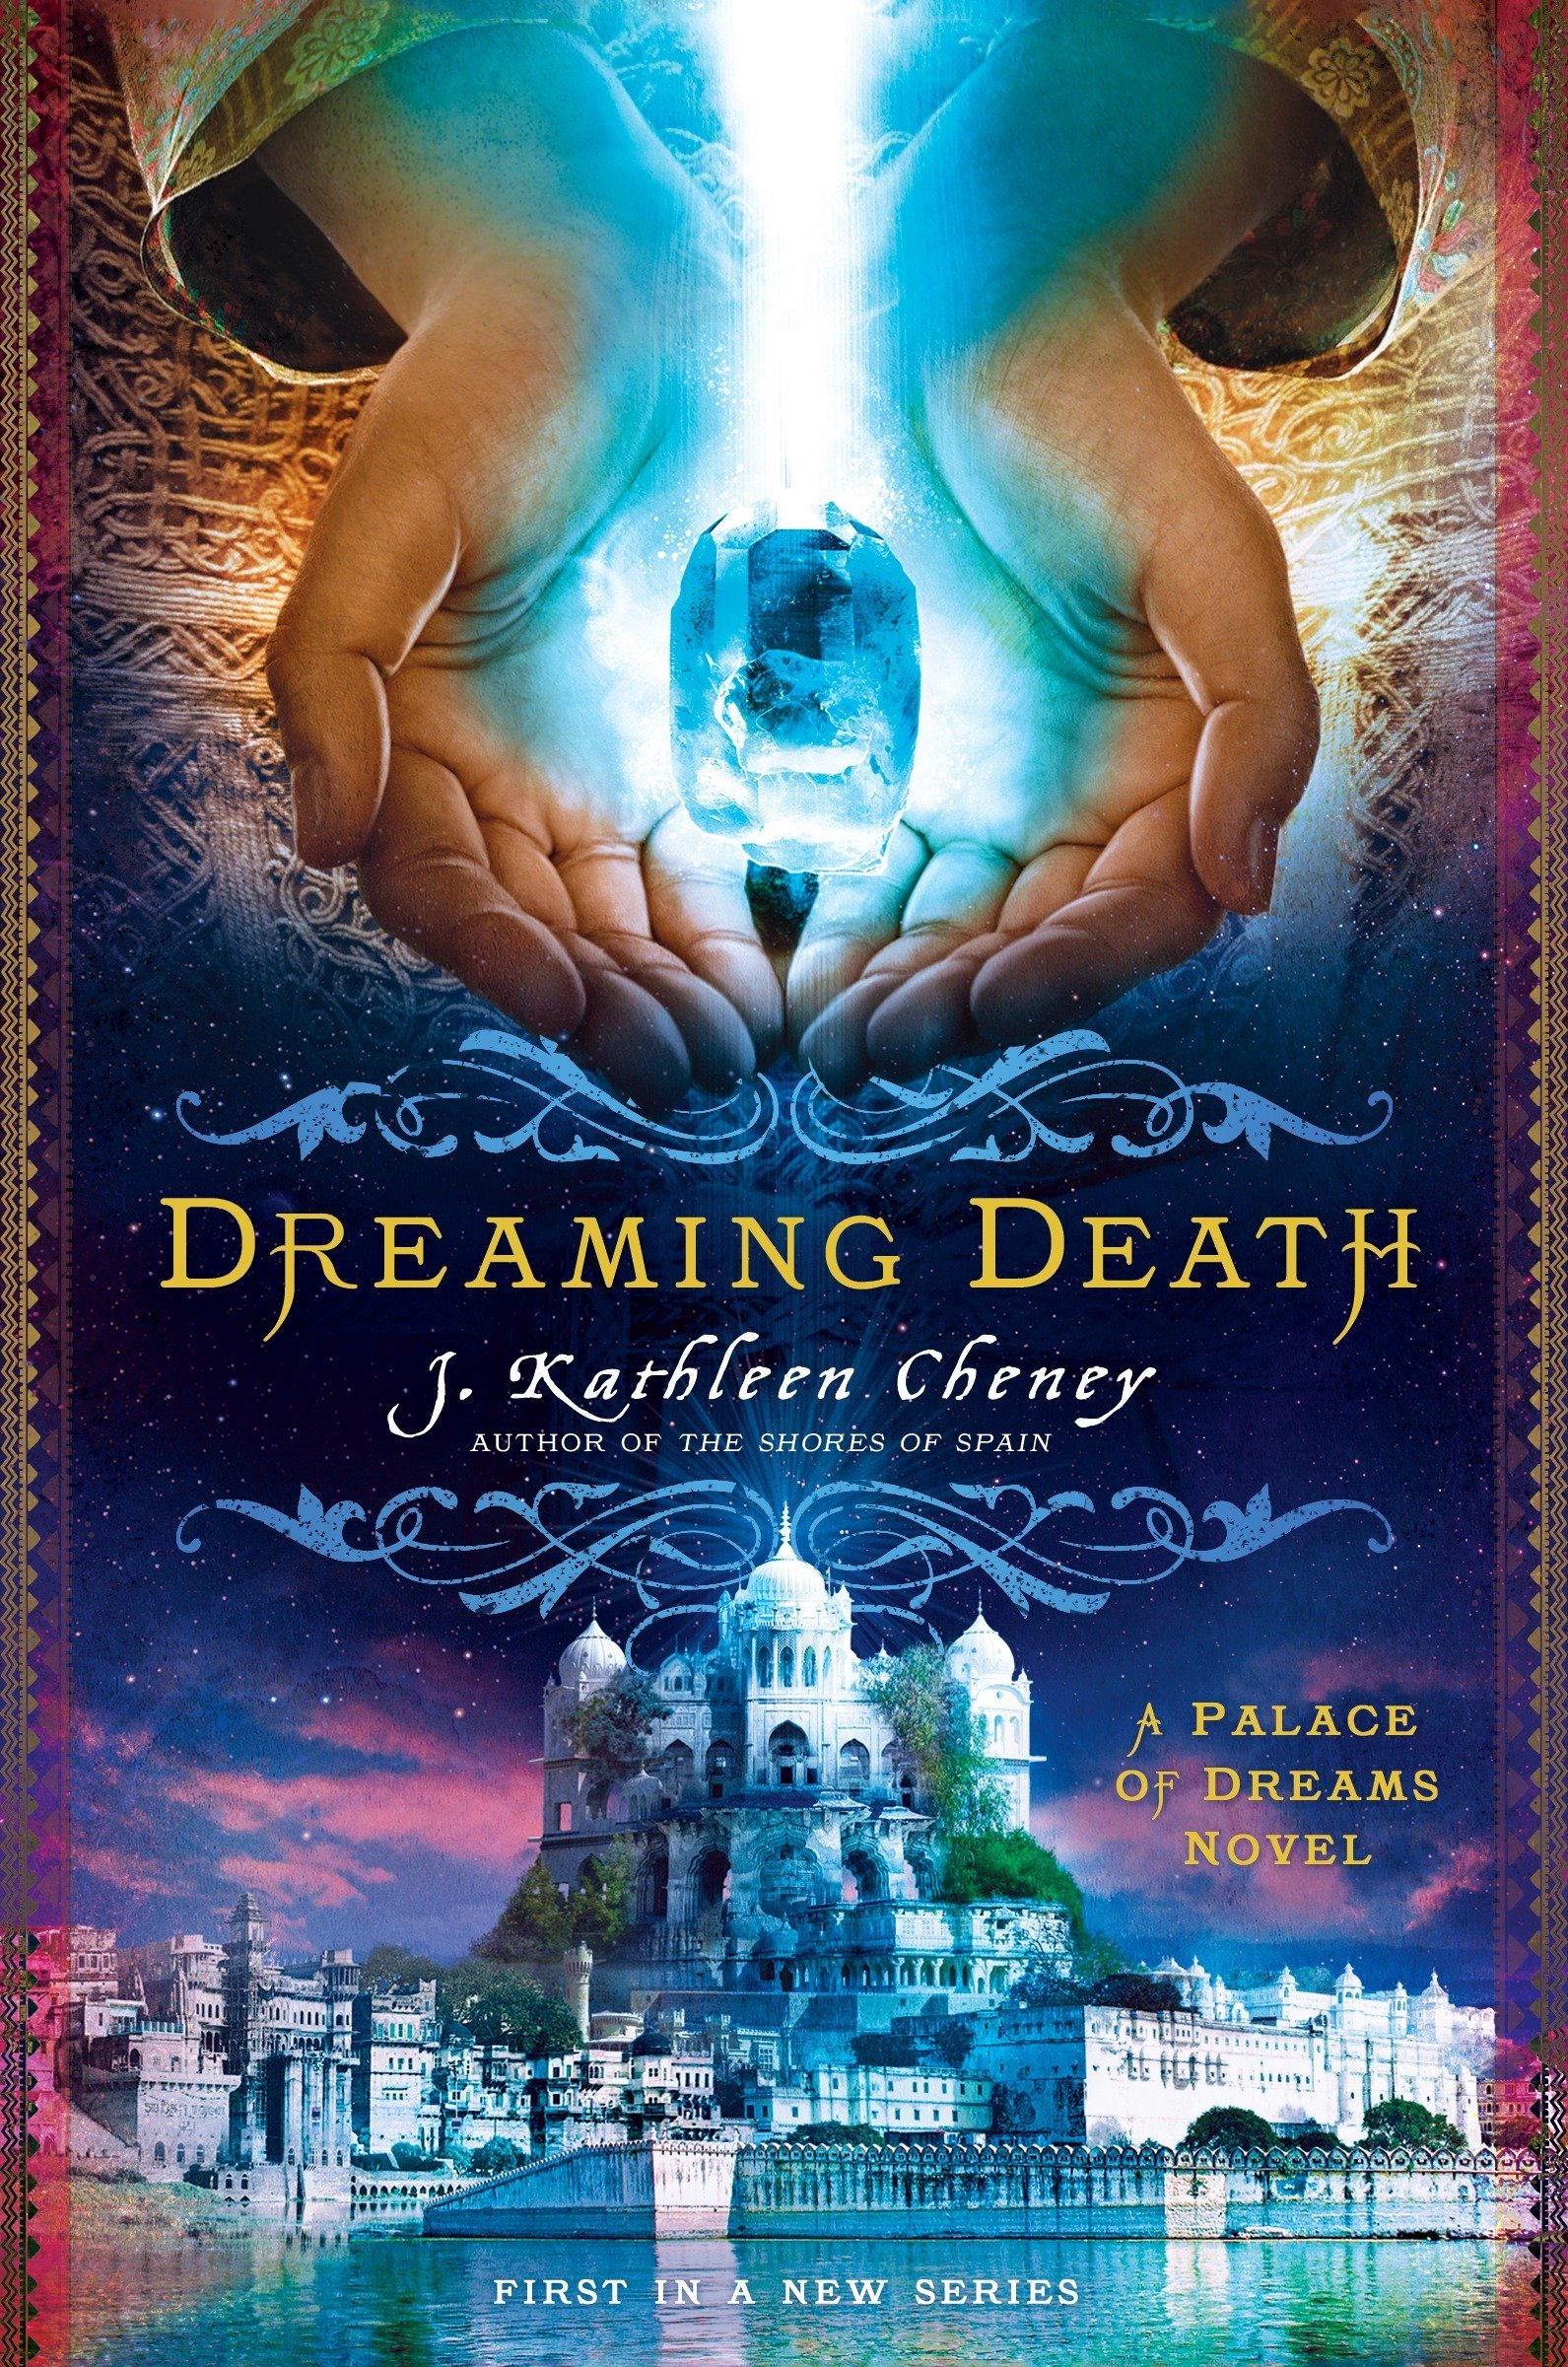 Dreaming Death (Palace of Dreams): J. Kathleen Cheney: 9780451472939 ...